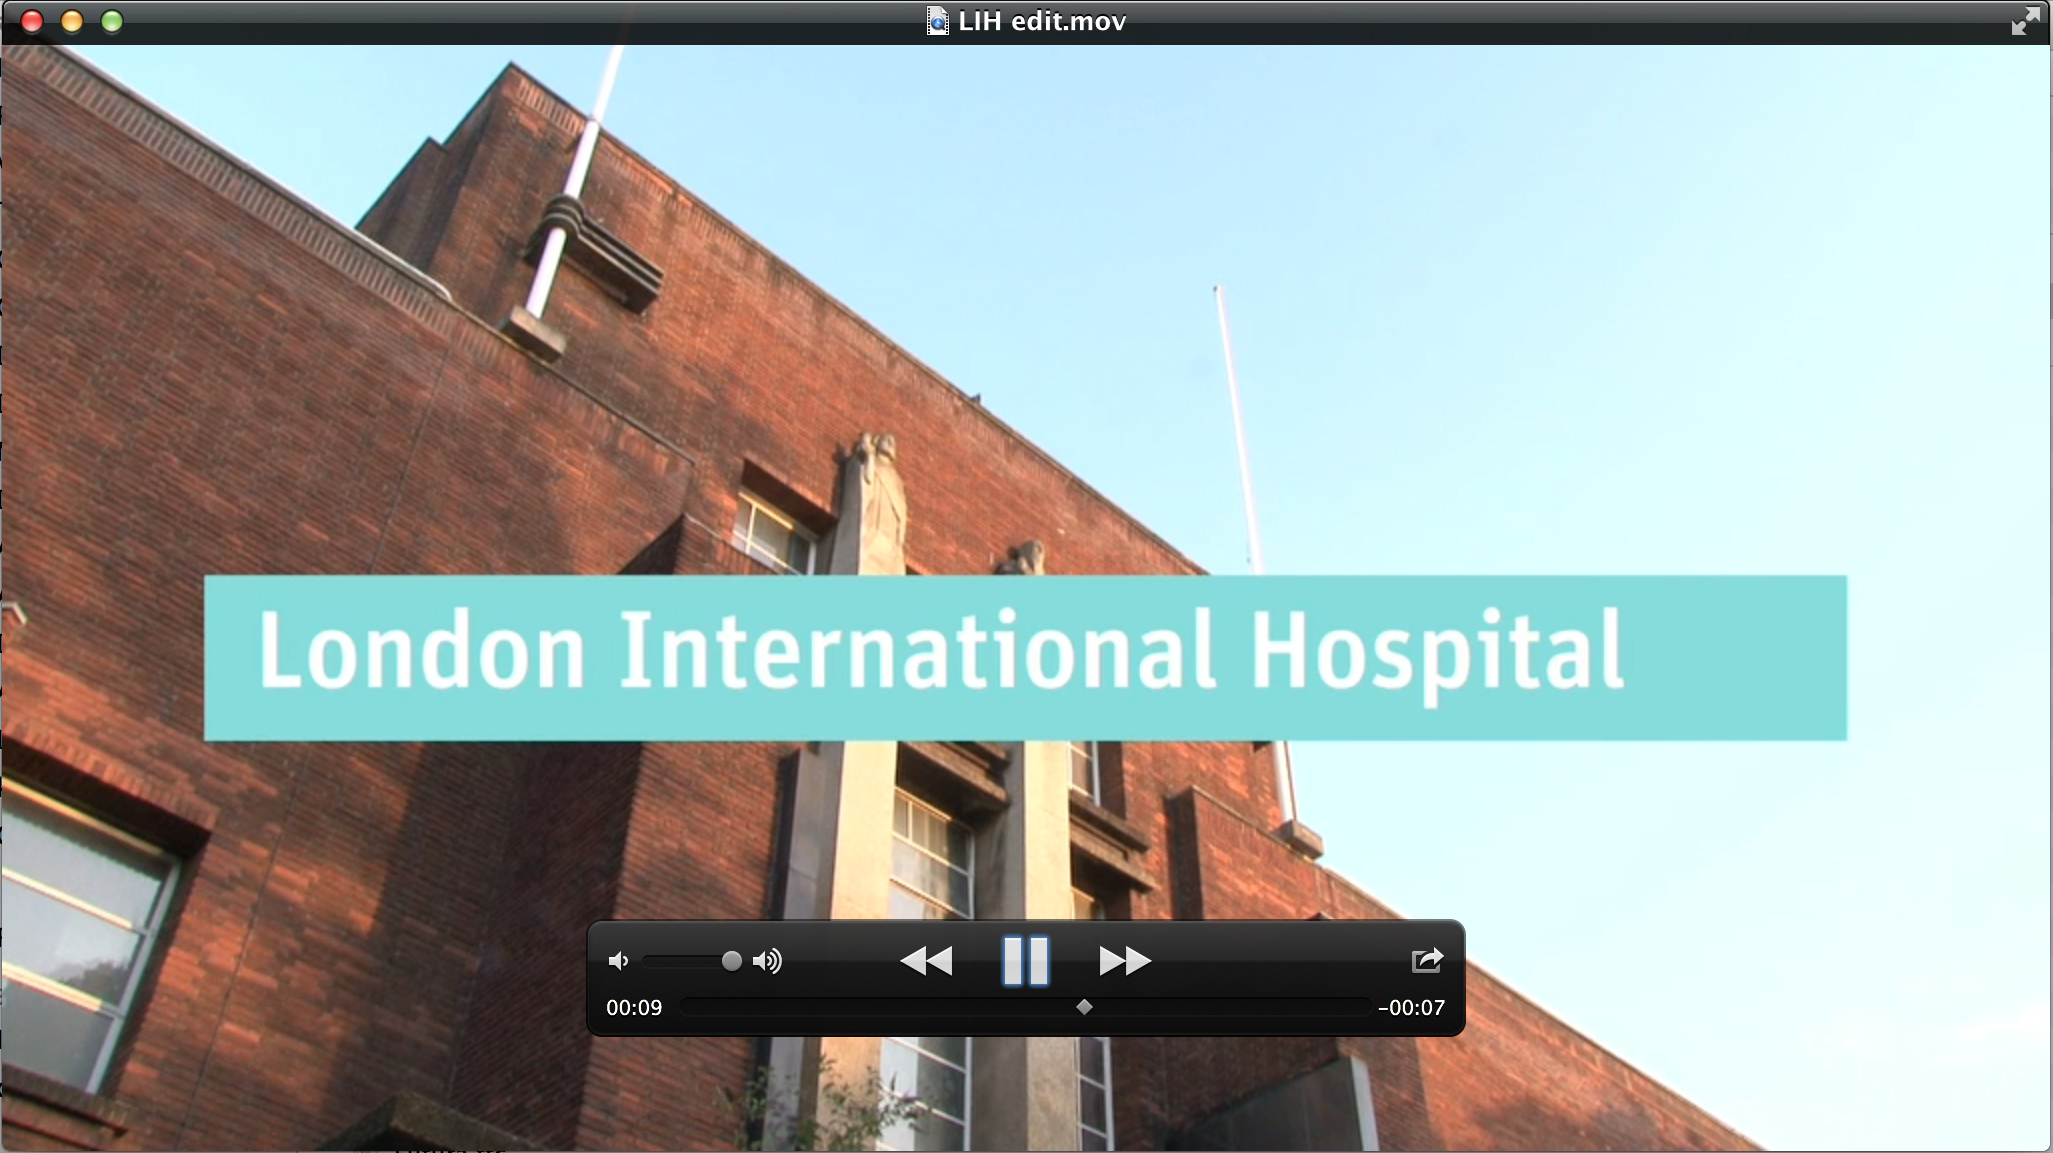 London International Hospital movie